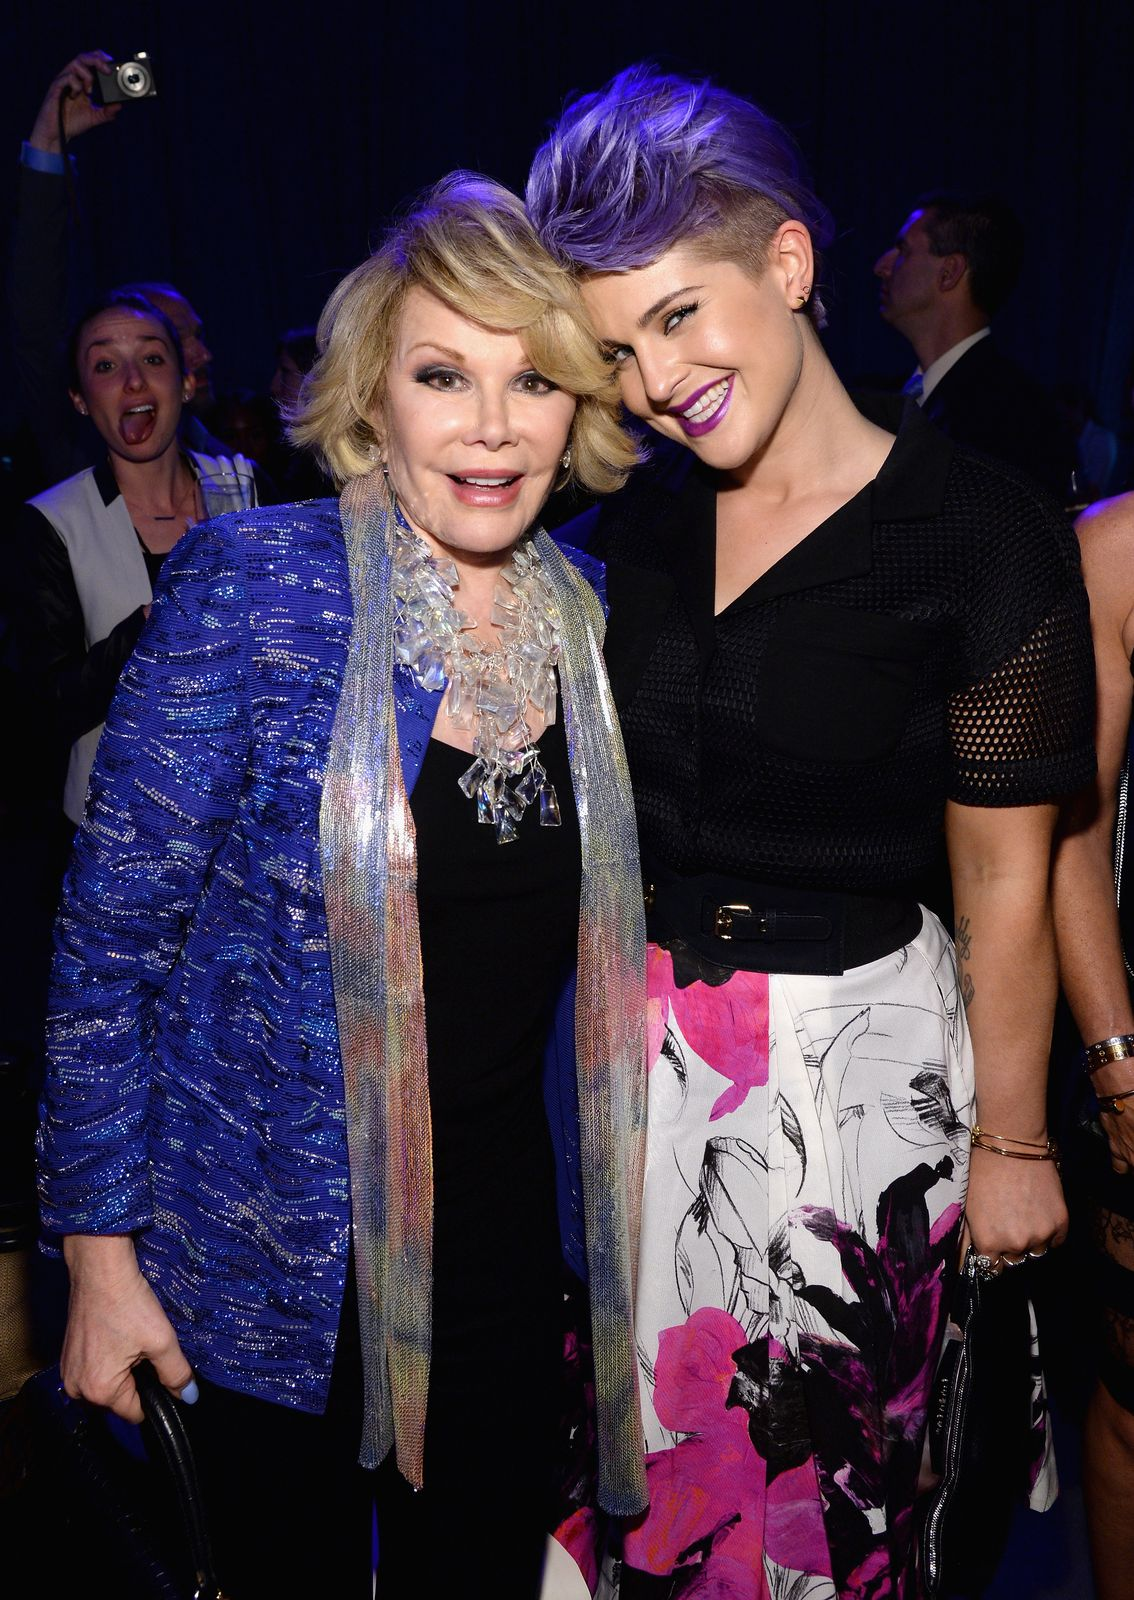 """Joan Rivers and Kelly Osbourne from """"Fashion Police"""" at the Javits Center in New York City on May 15, 2014 